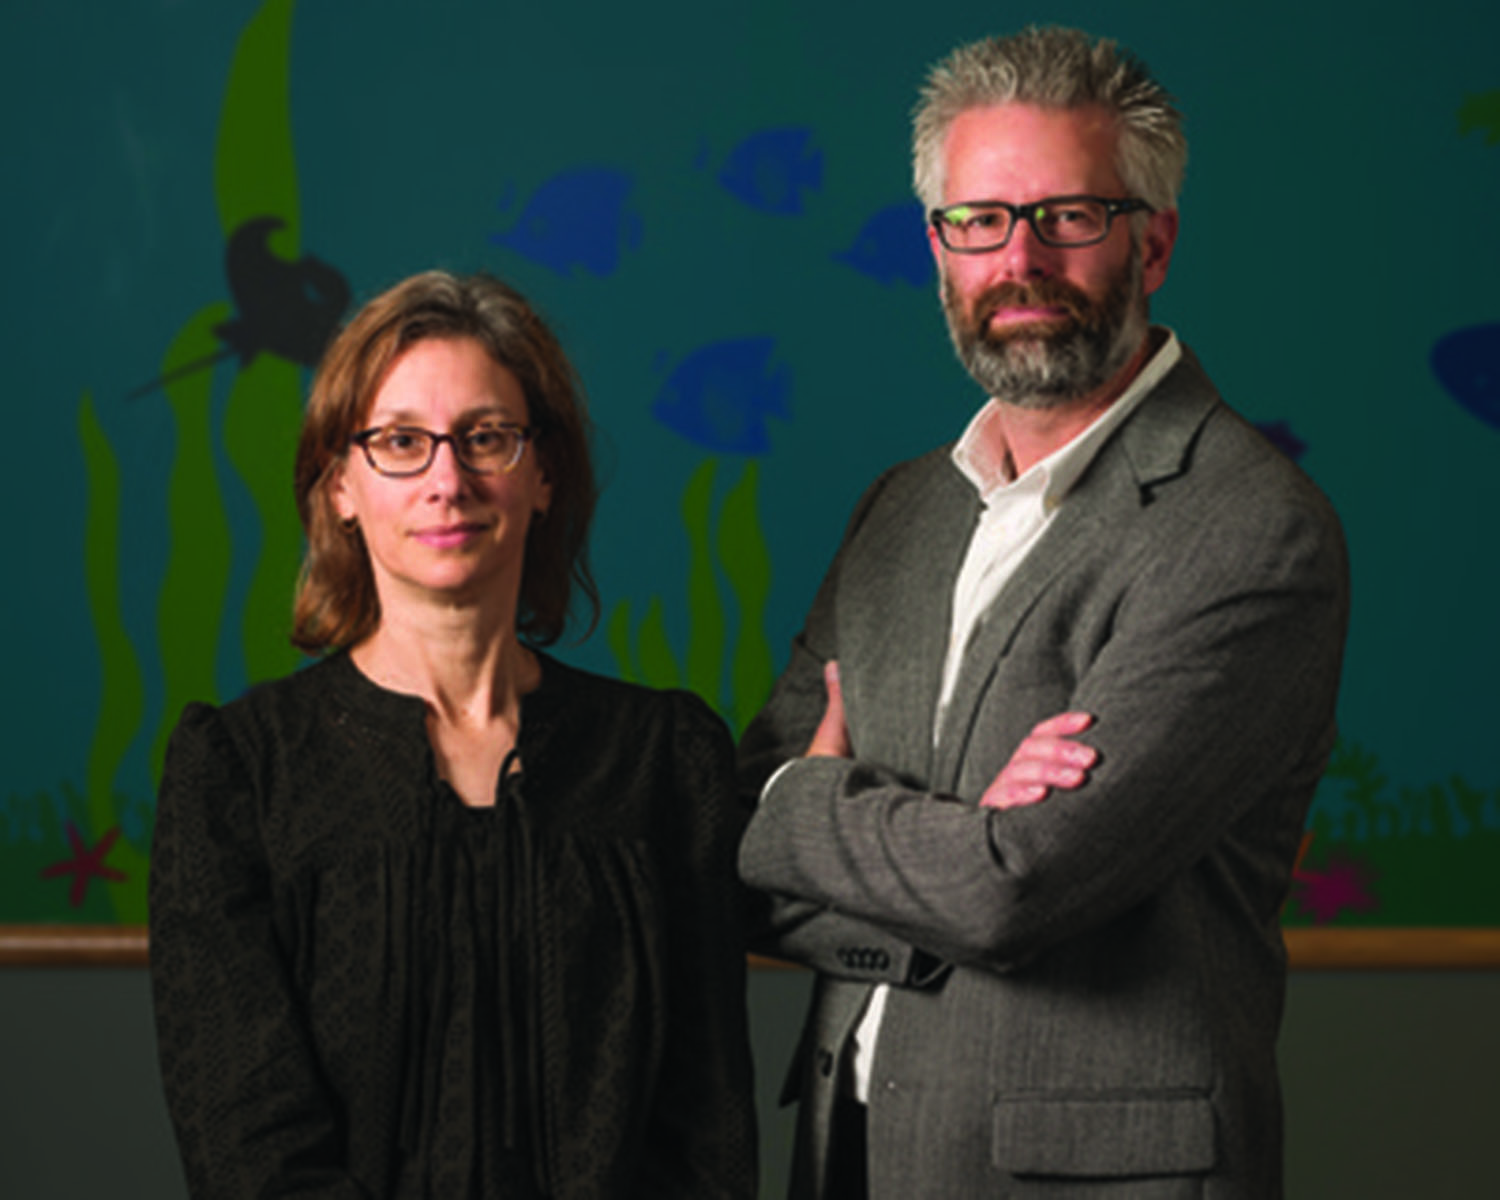 Drs. Claudia Fox and Aaron Kelly